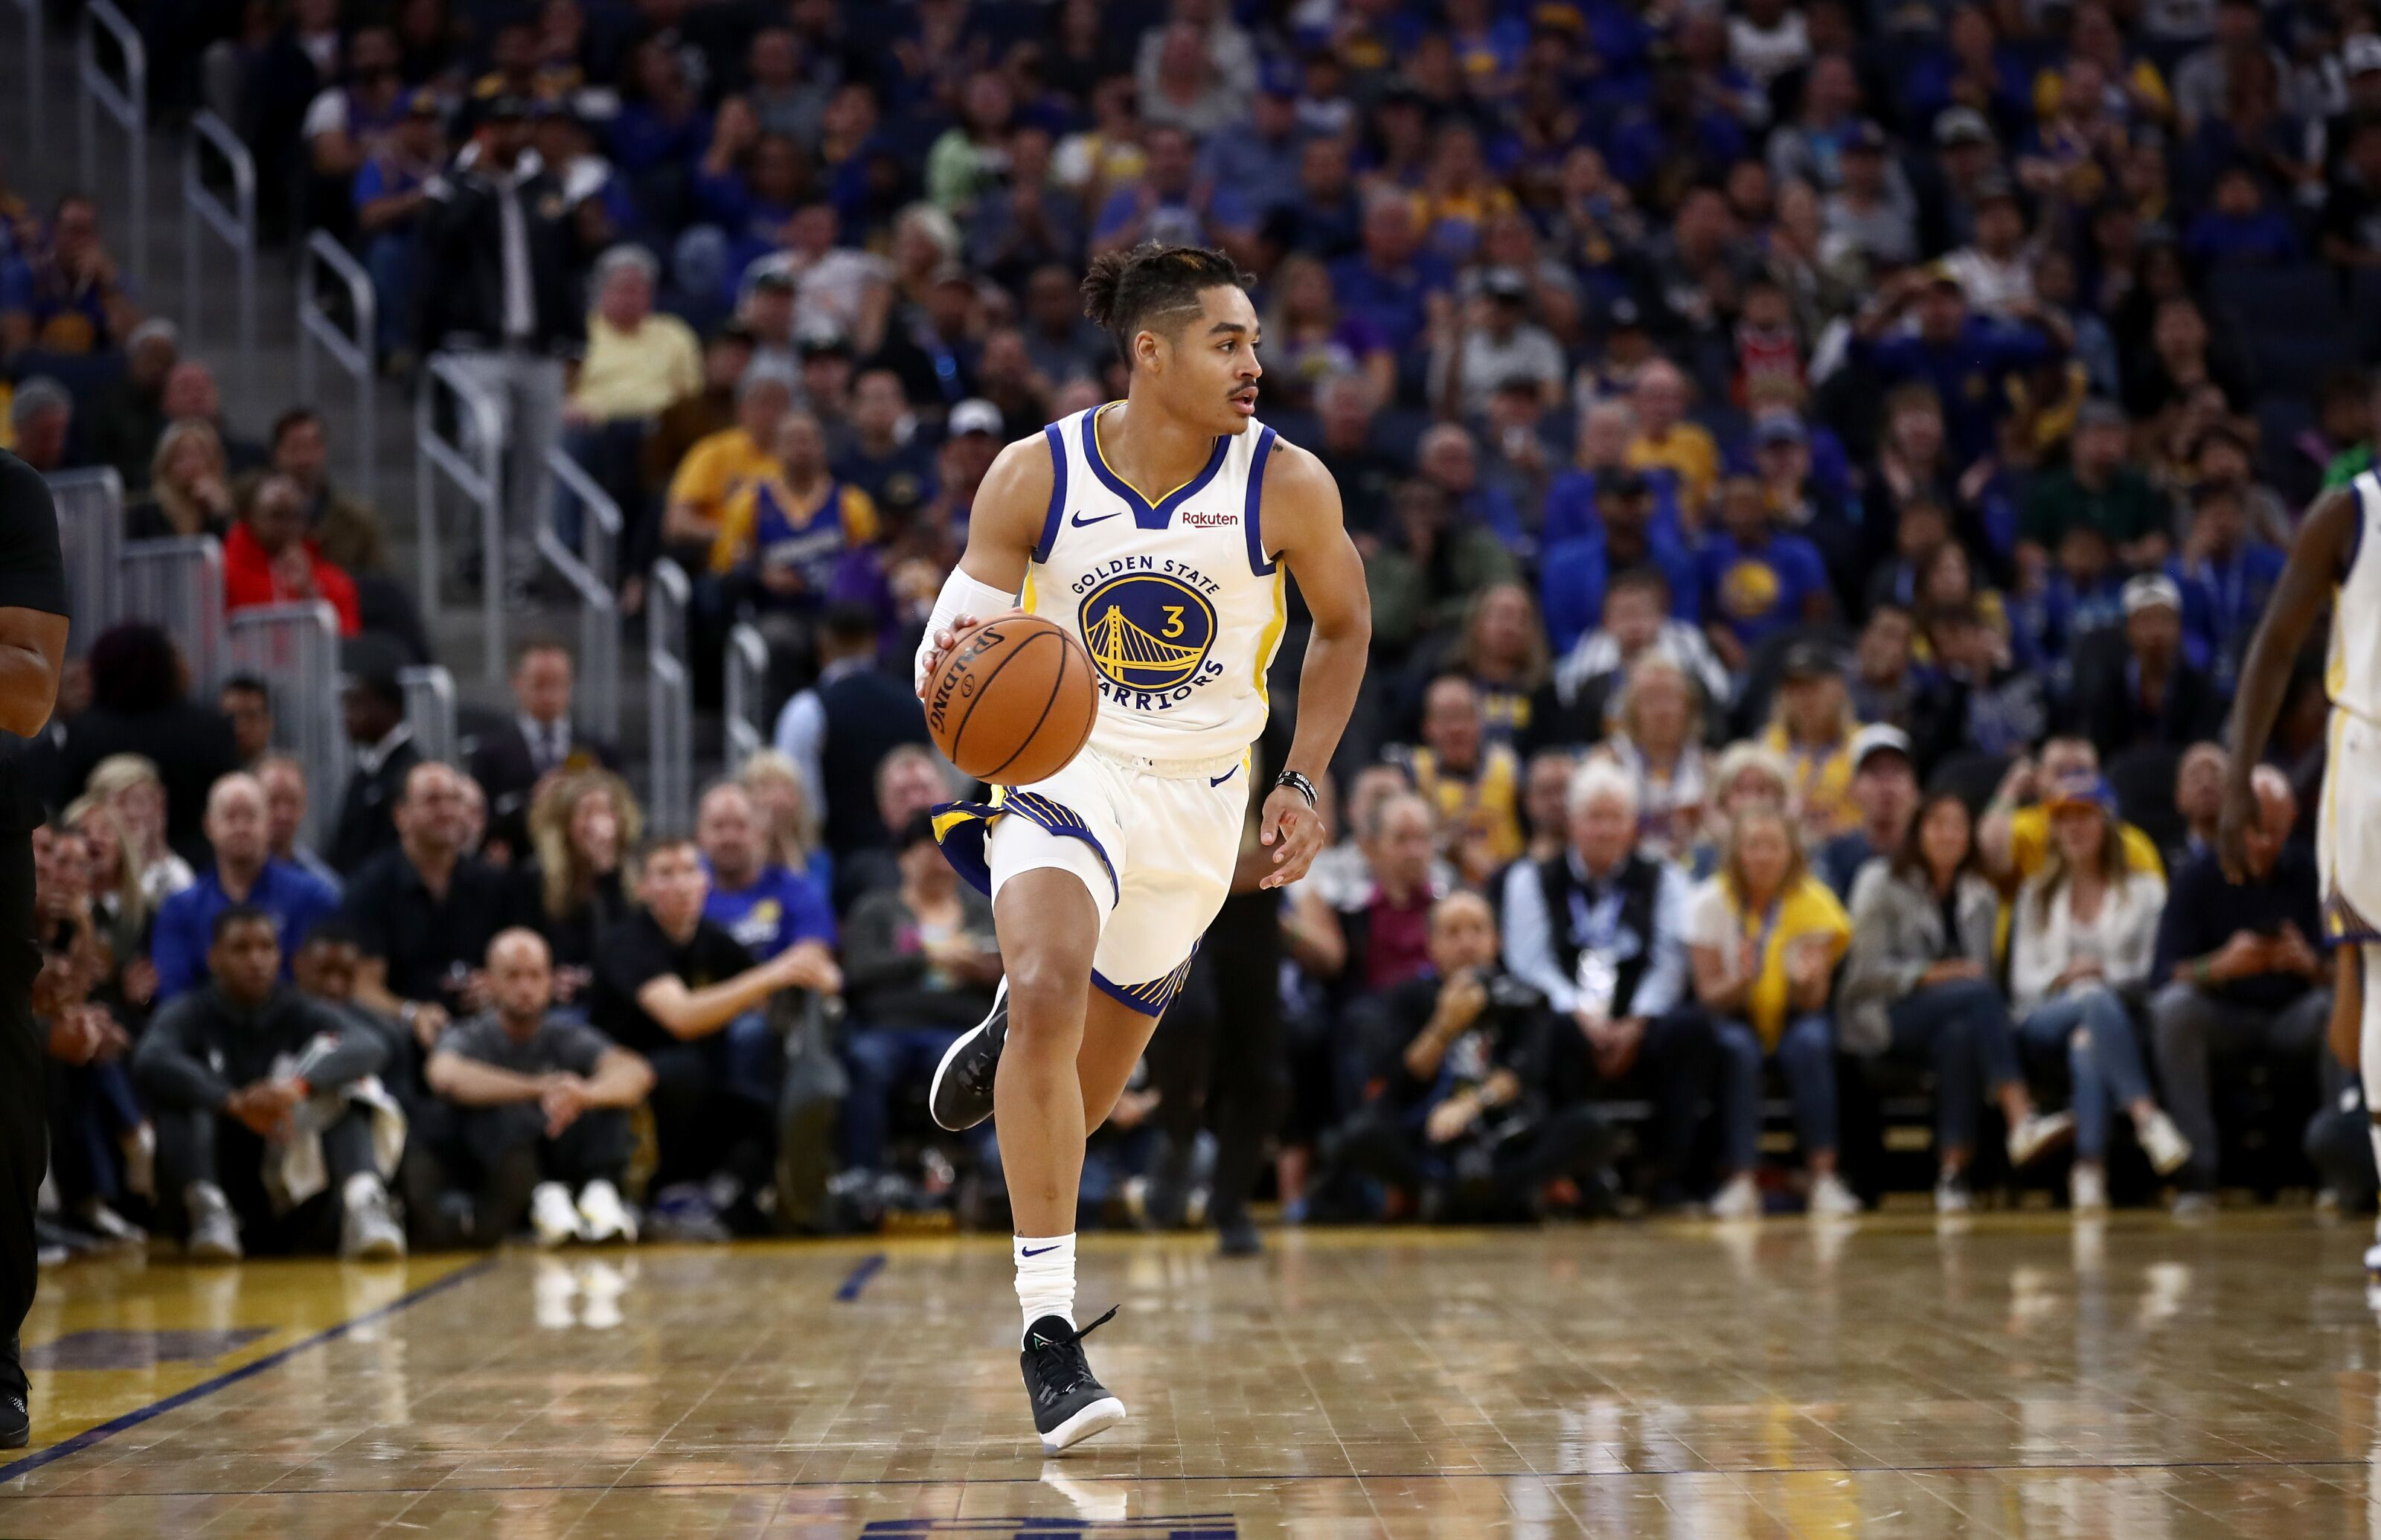 Golden State Warriors: Jordan Poole may quietly make himself the go-to player on the second unit